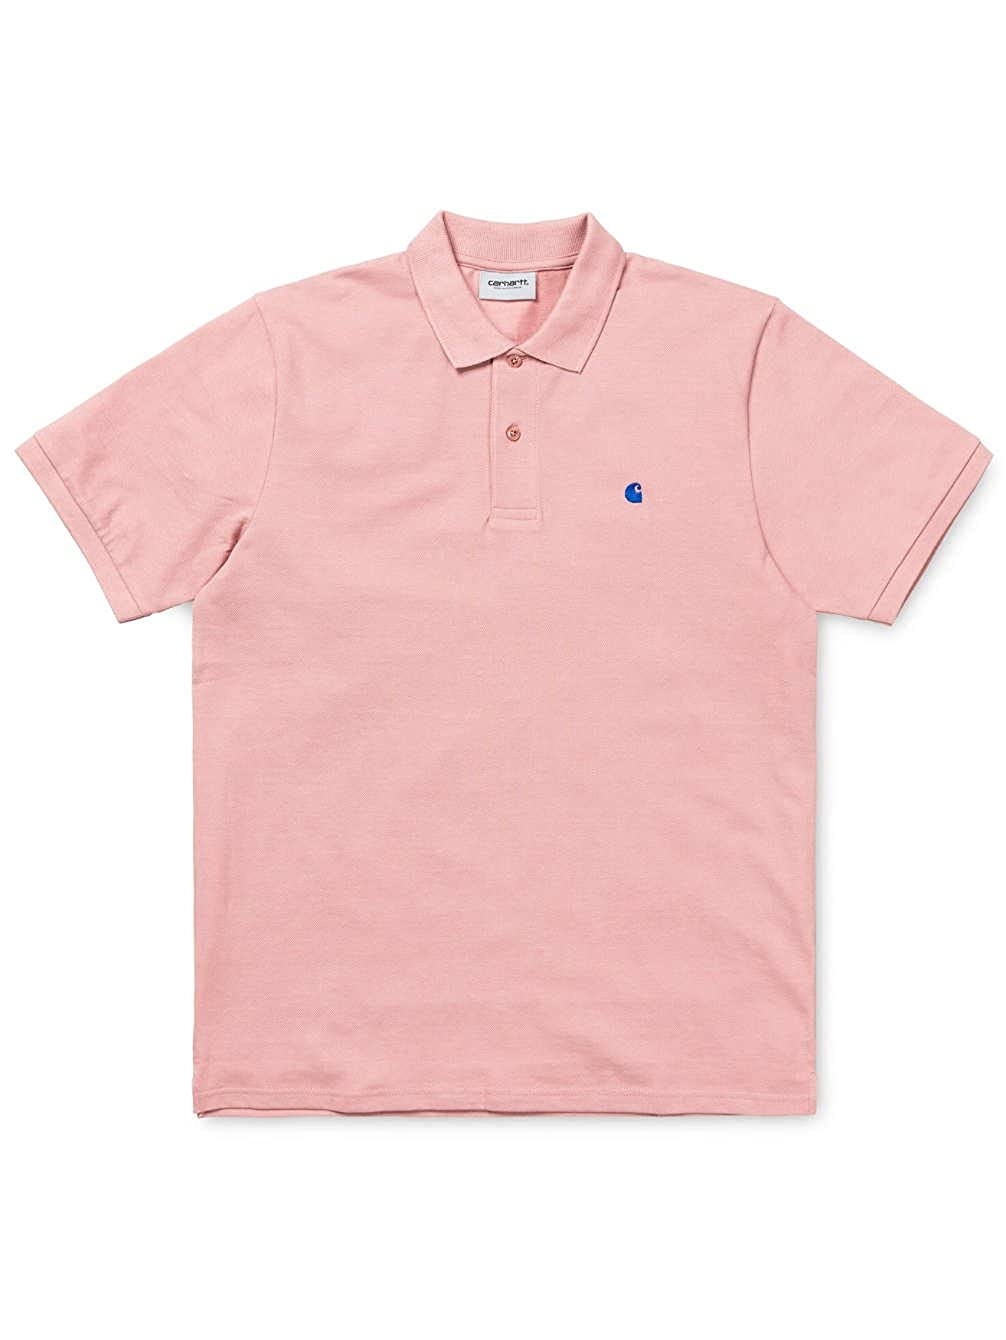 Carhartt S/S Madison Polo Soft Rose/Sapphire: Amazon.es: Ropa y ...